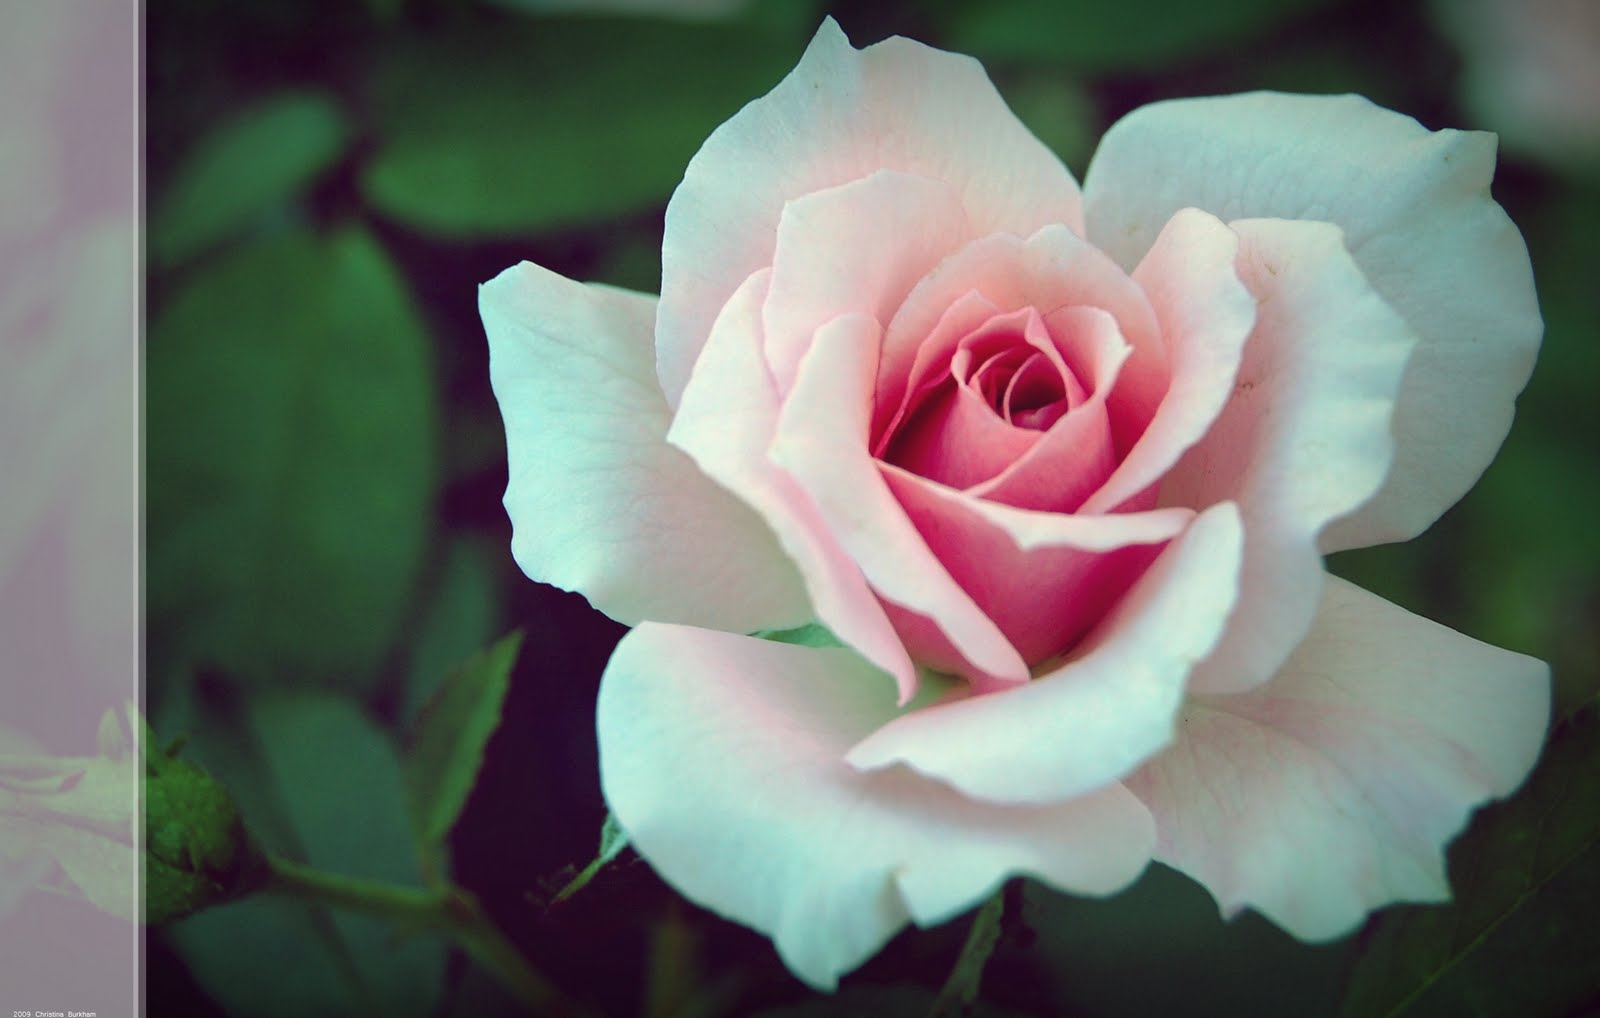 Rose Wallpaper: Pink Rose HD Wallpaper Download Free